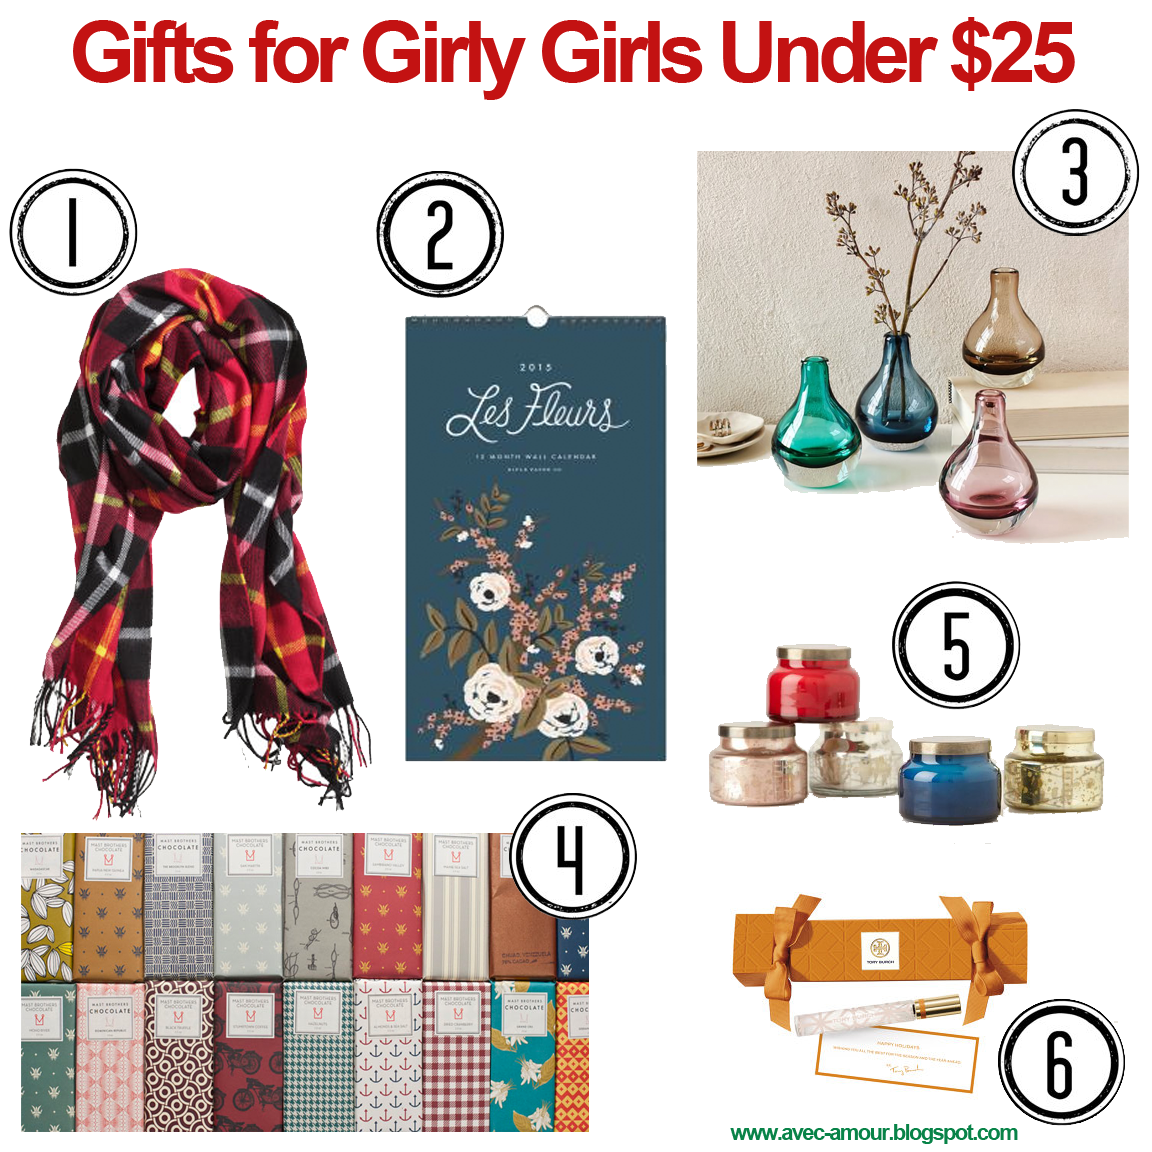 Avec Amour - Gift Guide: Gifts for Her Under $25